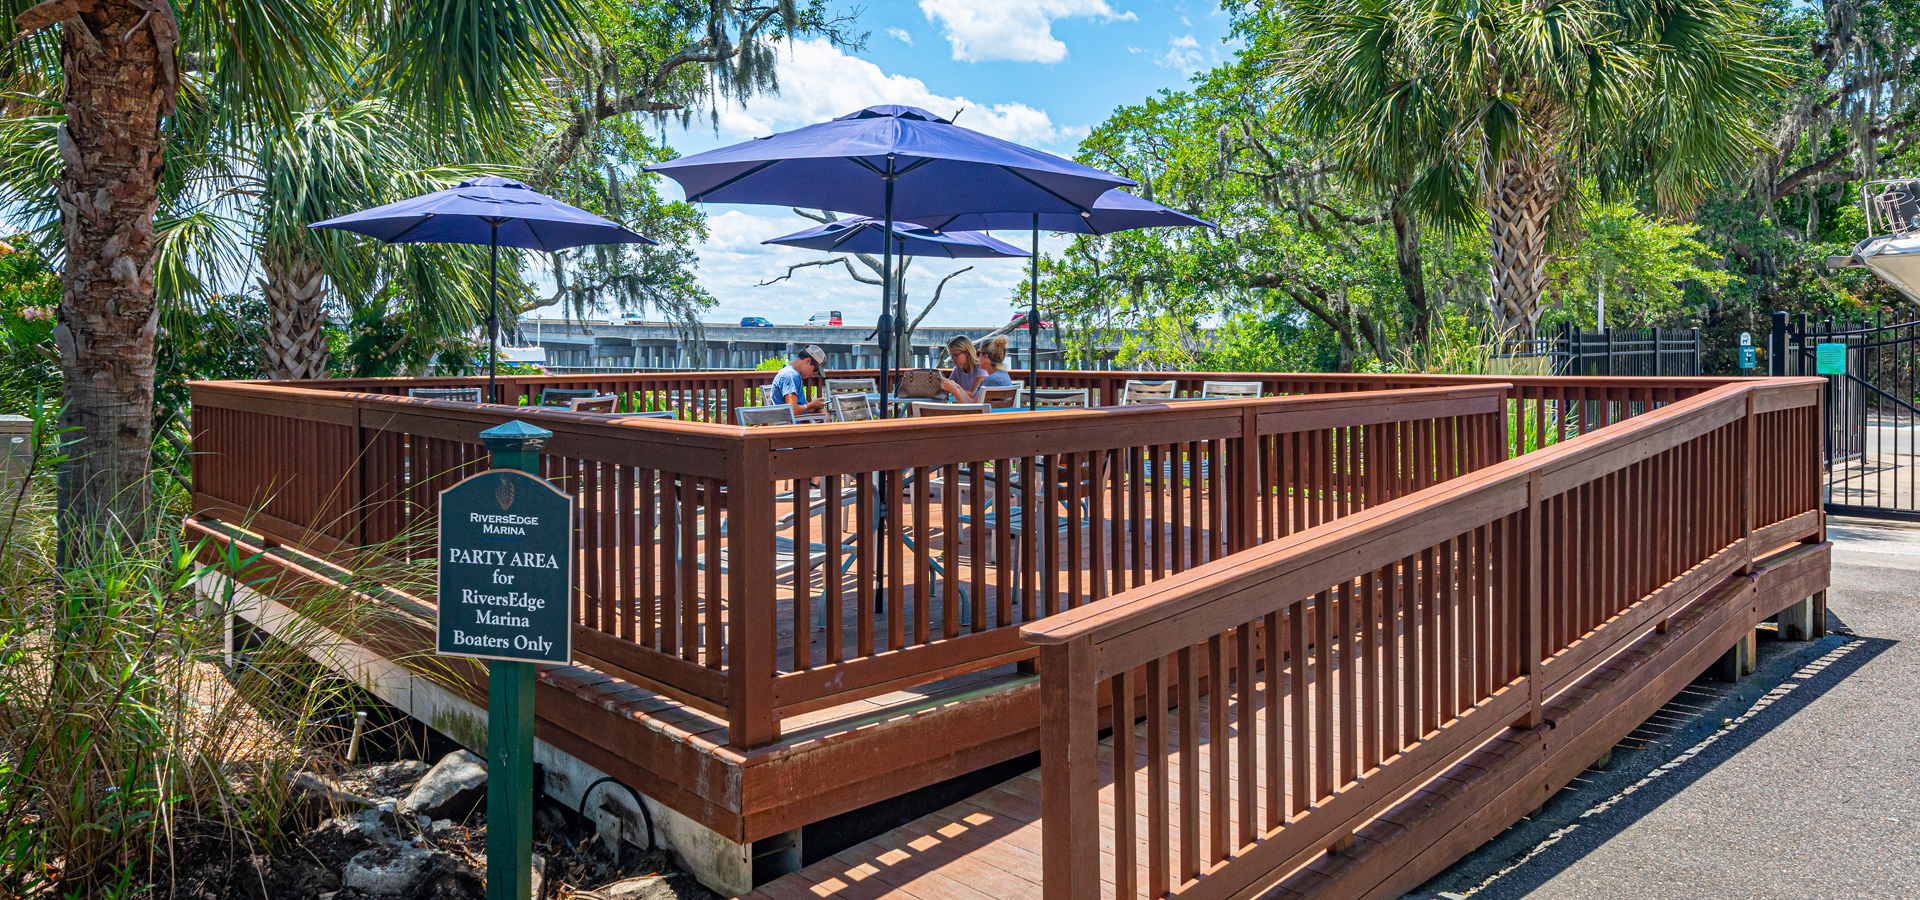 Amenities – Picnic and Grilling Area